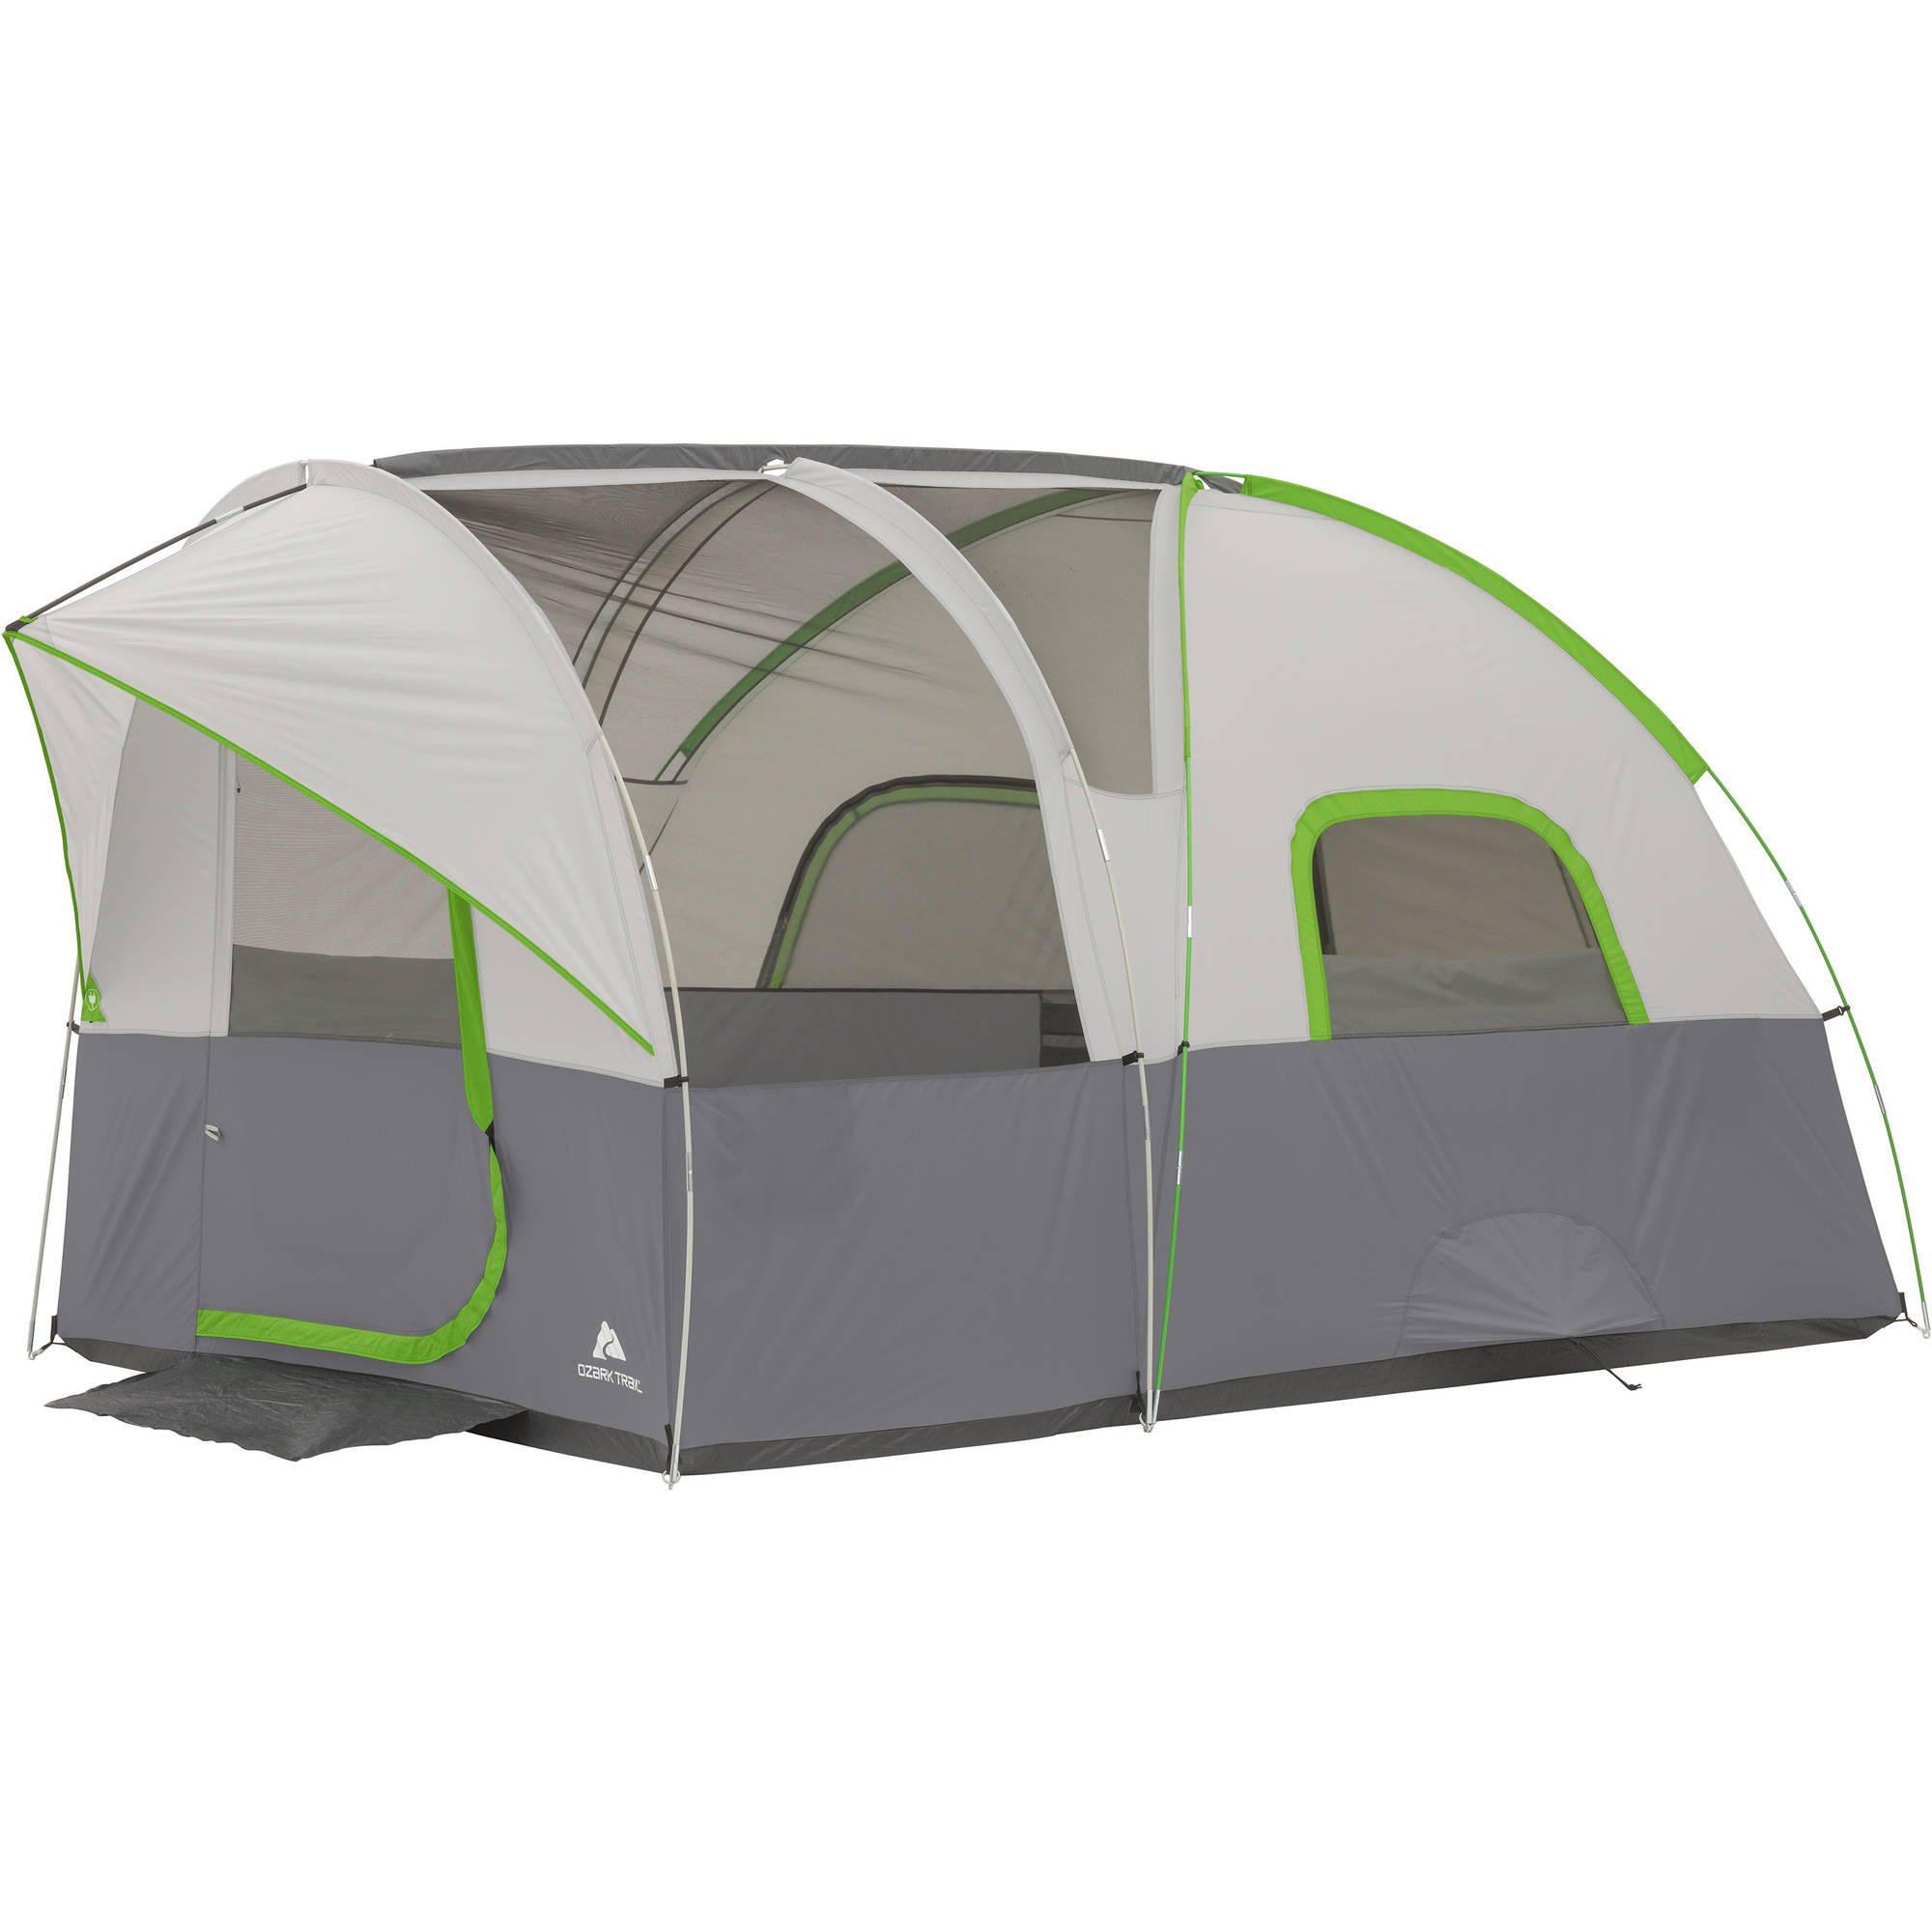 Ozark Trail 12u0027 x 8u0027 Modified Dome Tunnel Tent ...  sc 1 st  Walmart & Ozark Trail 12u0027 x 8u0027 Modified Dome Tunnel Tent Sleeps 6 - Walmart.com